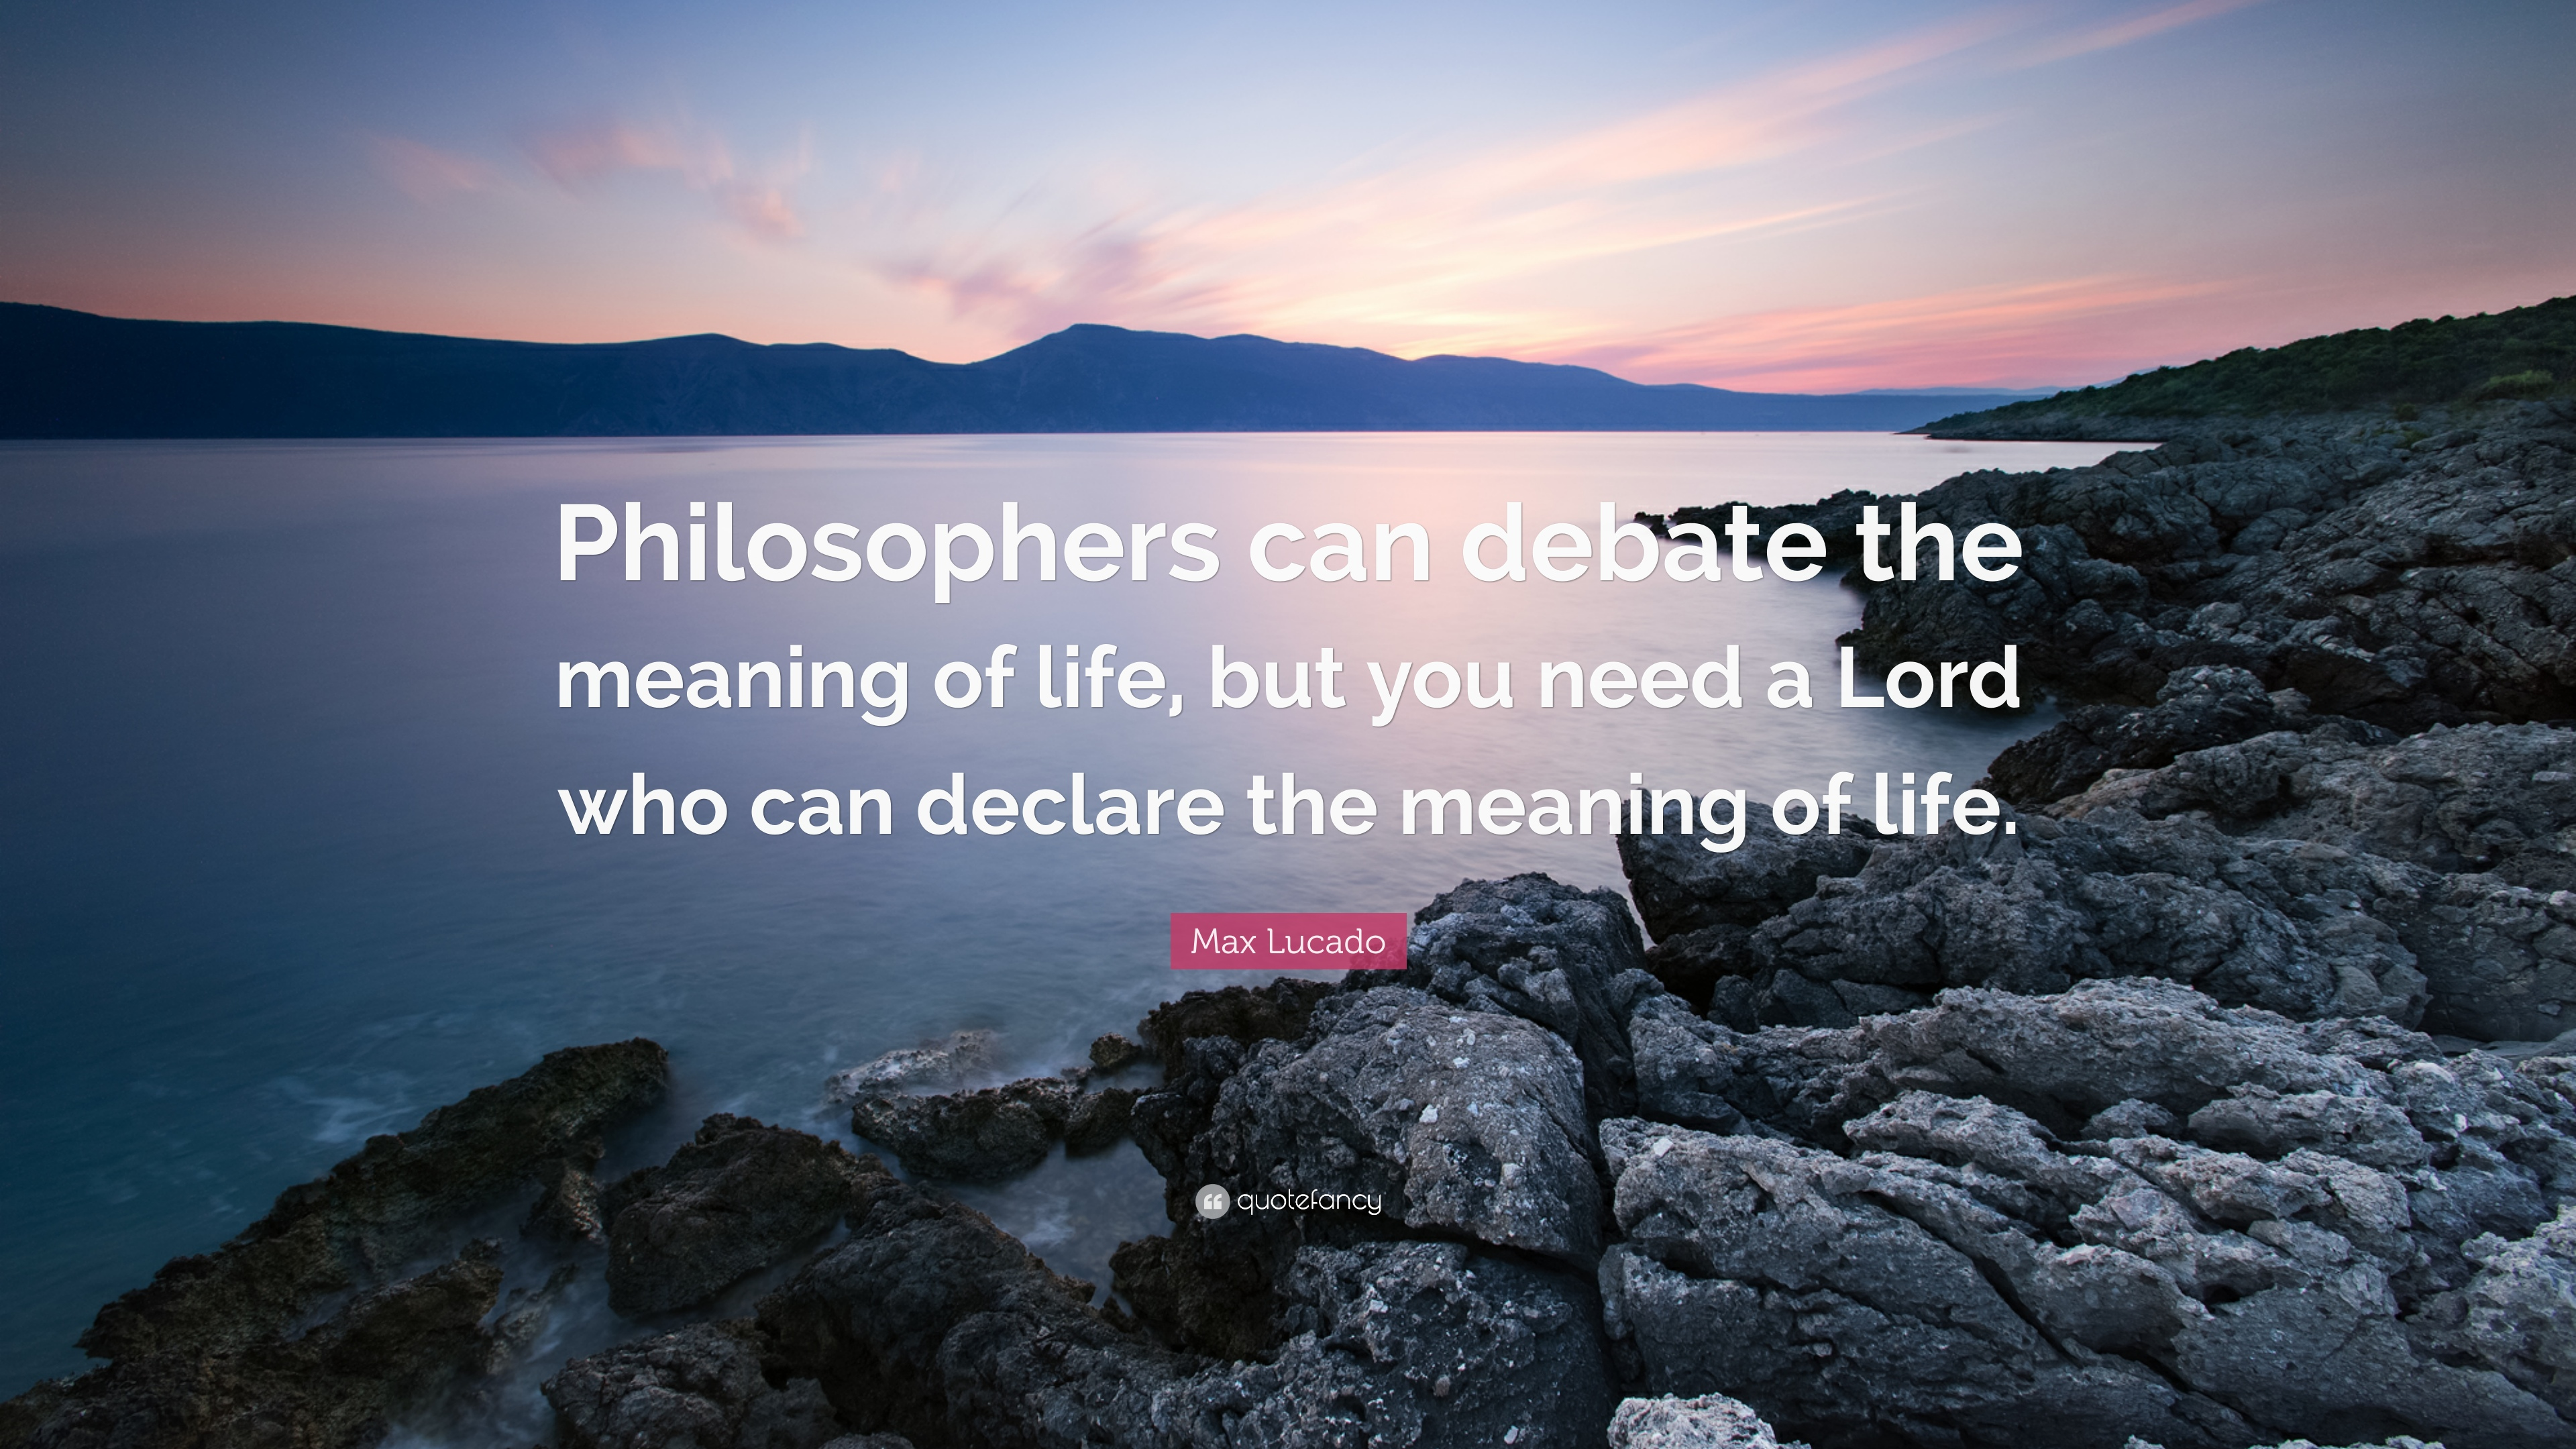 Philosophers Quotes On The Meaning Of Life Fascinating Meaning Of Life Quotes 40 Wallpapers  Quotefancy